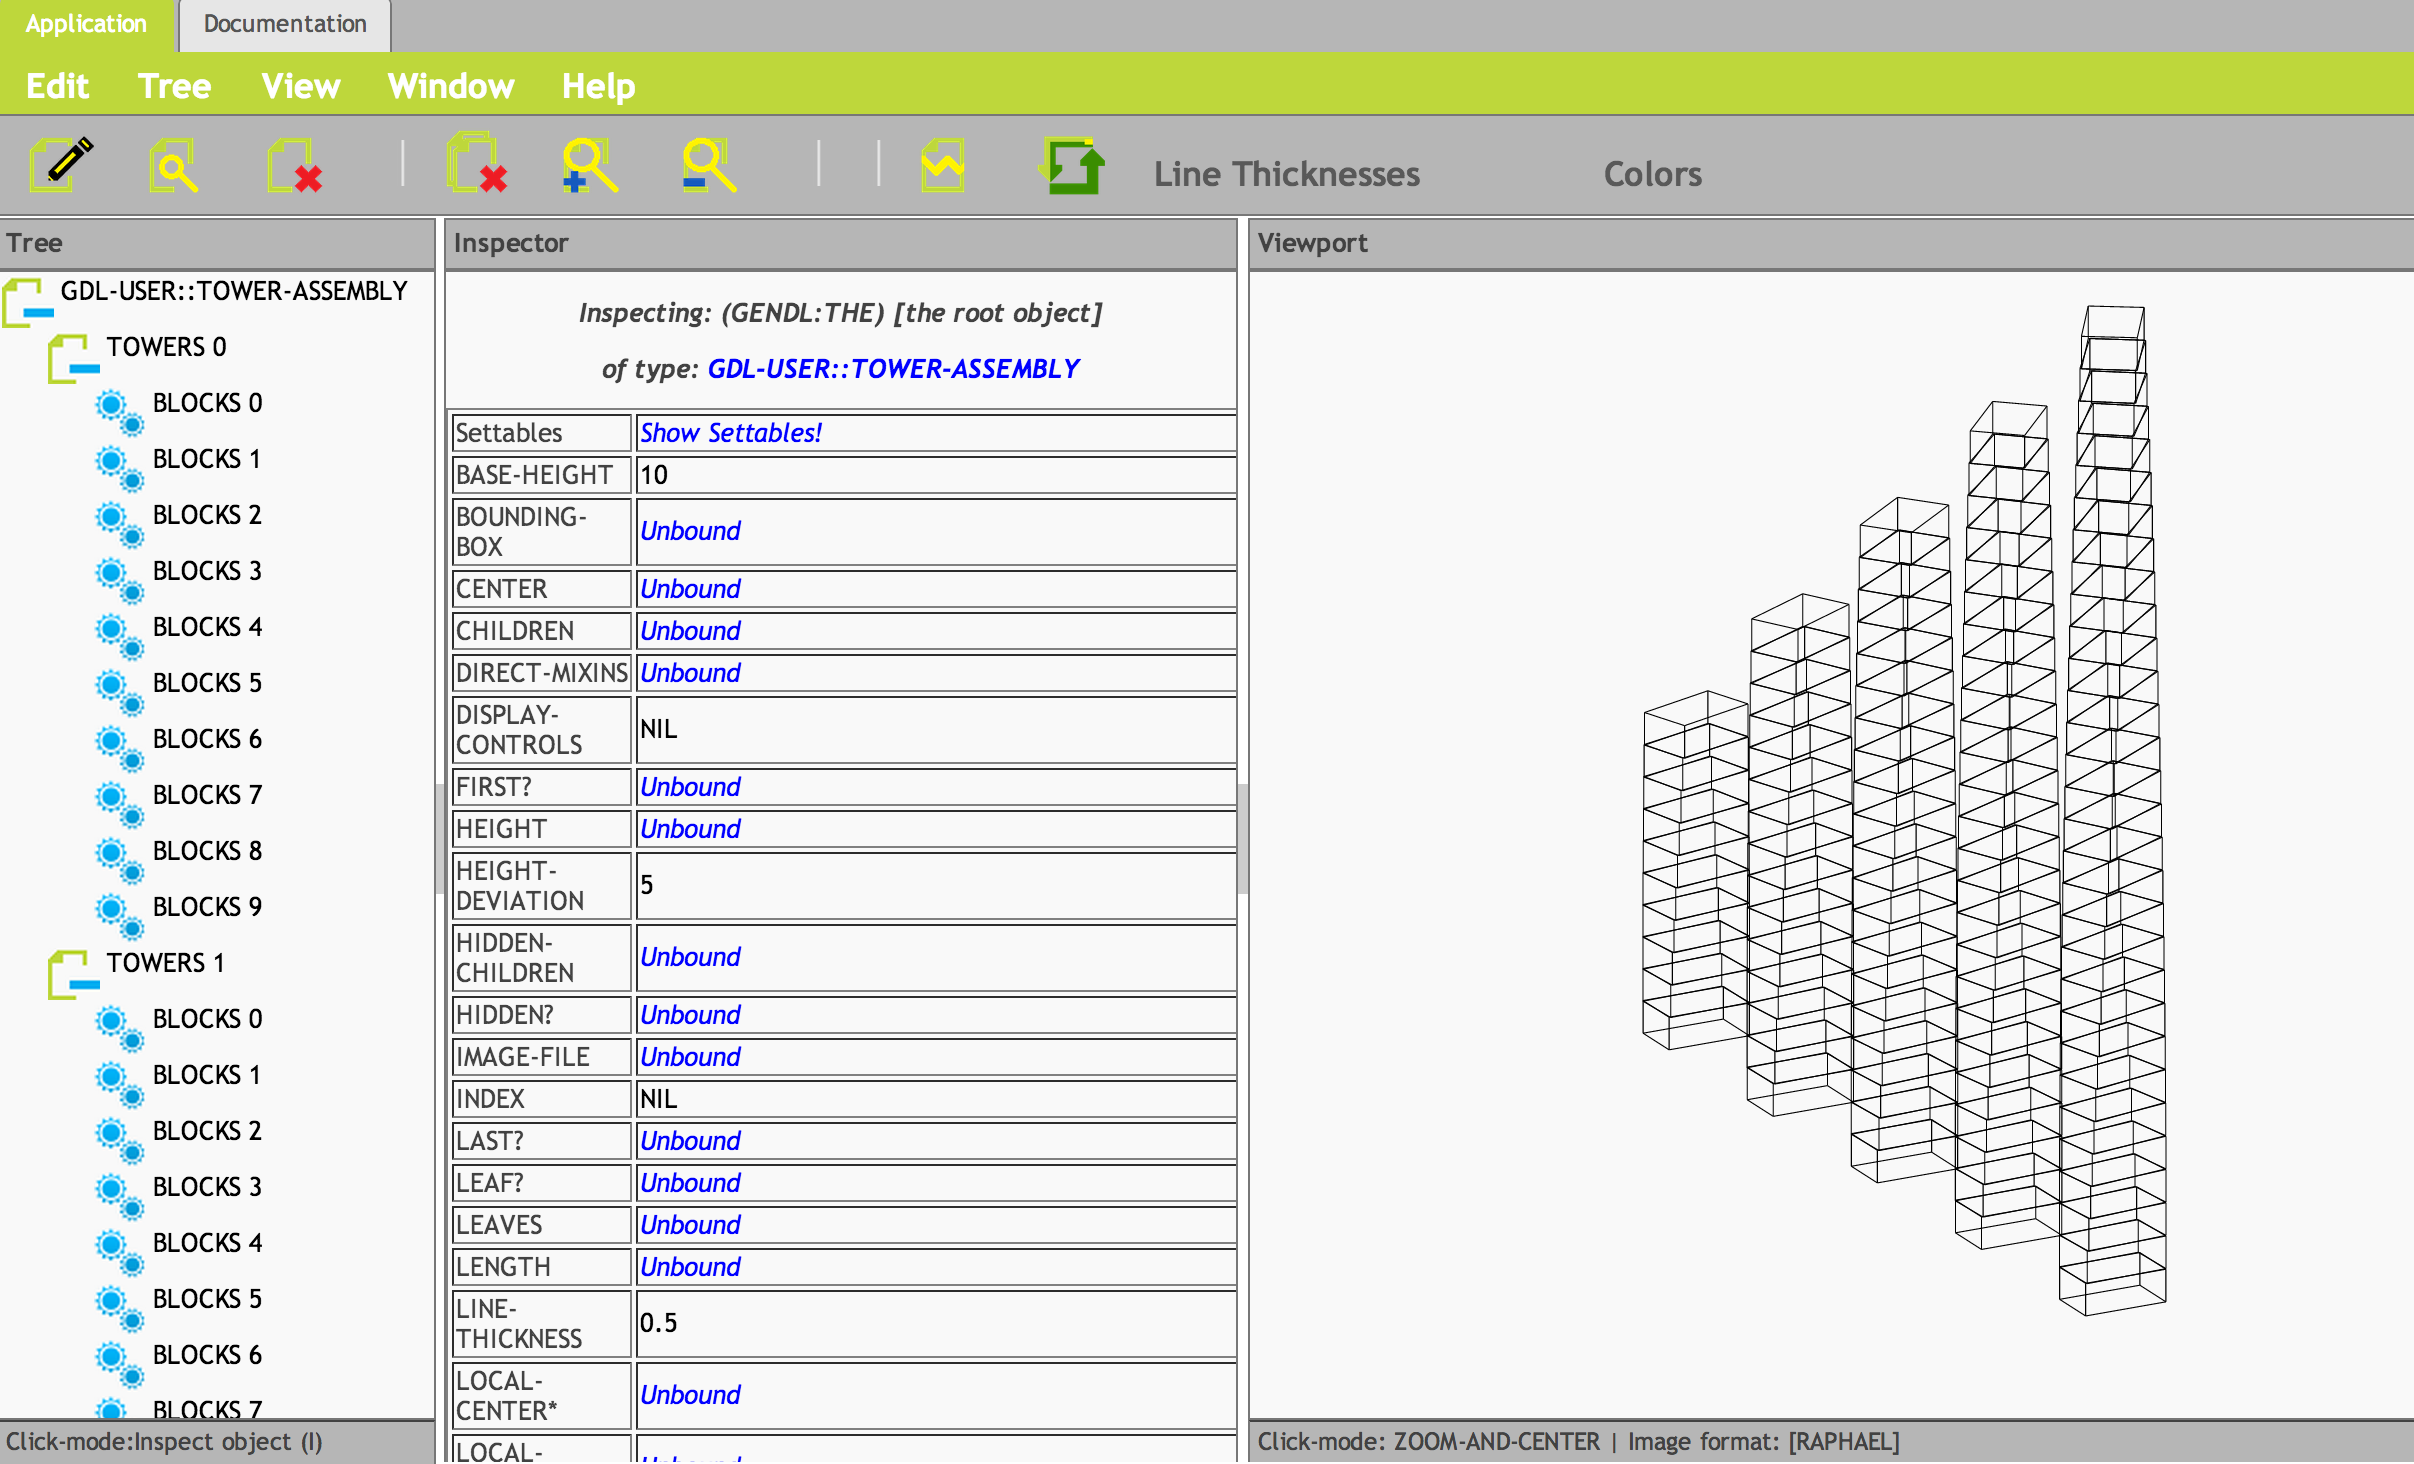 documentation/tutorial/images/tower-assembly-tasty.png